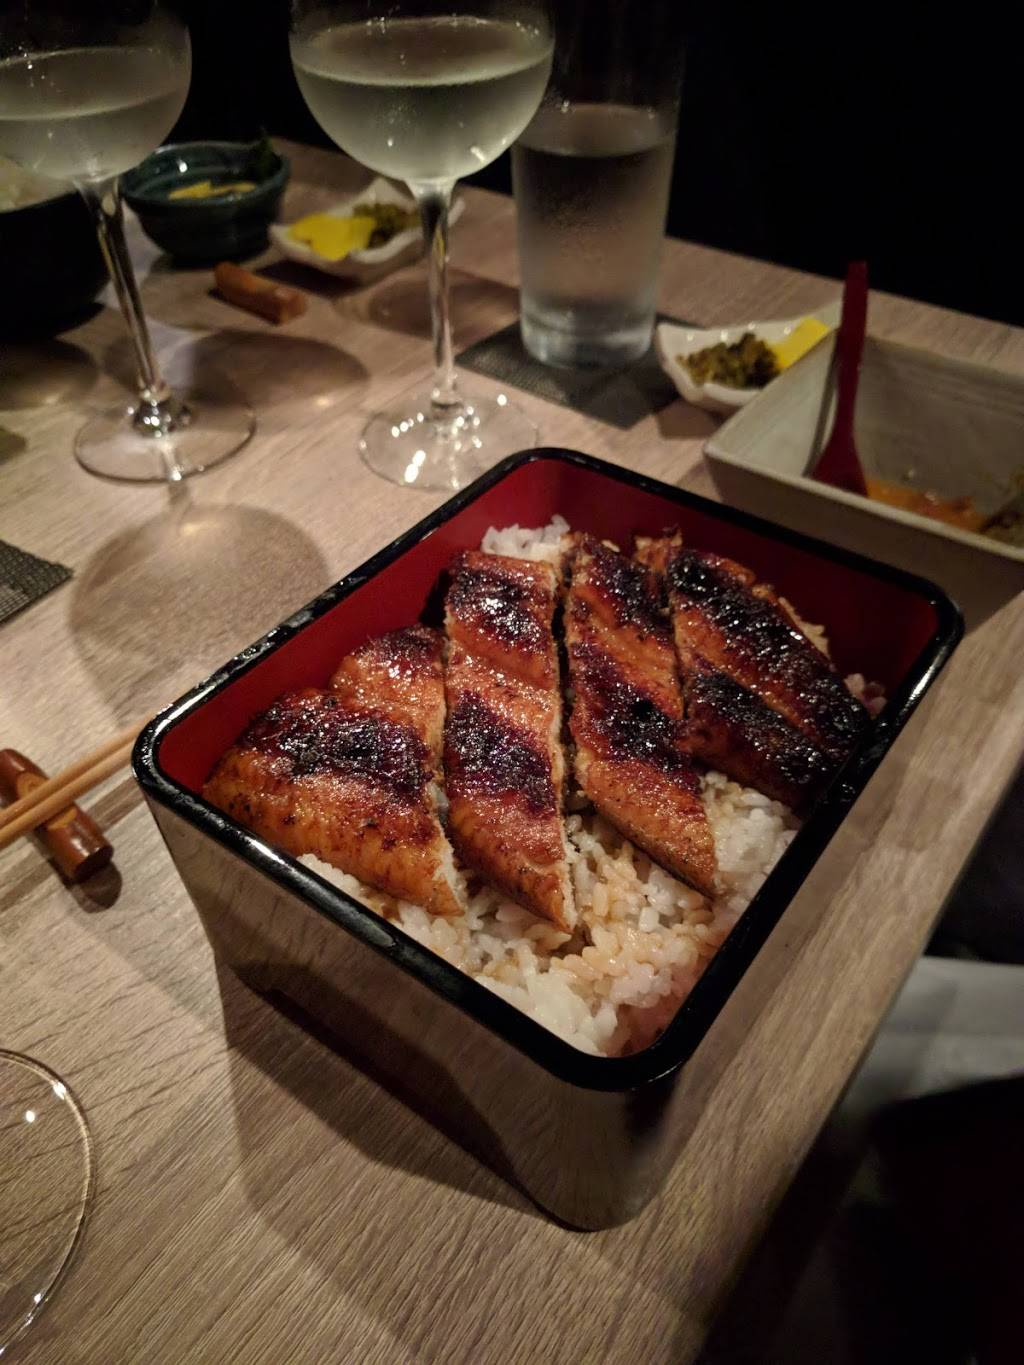 Unagi-Ya Hachibei | restaurant | F2, 238 E 53rd St, New York, NY 10022, USA | 2128888003 OR +1 212-888-8003